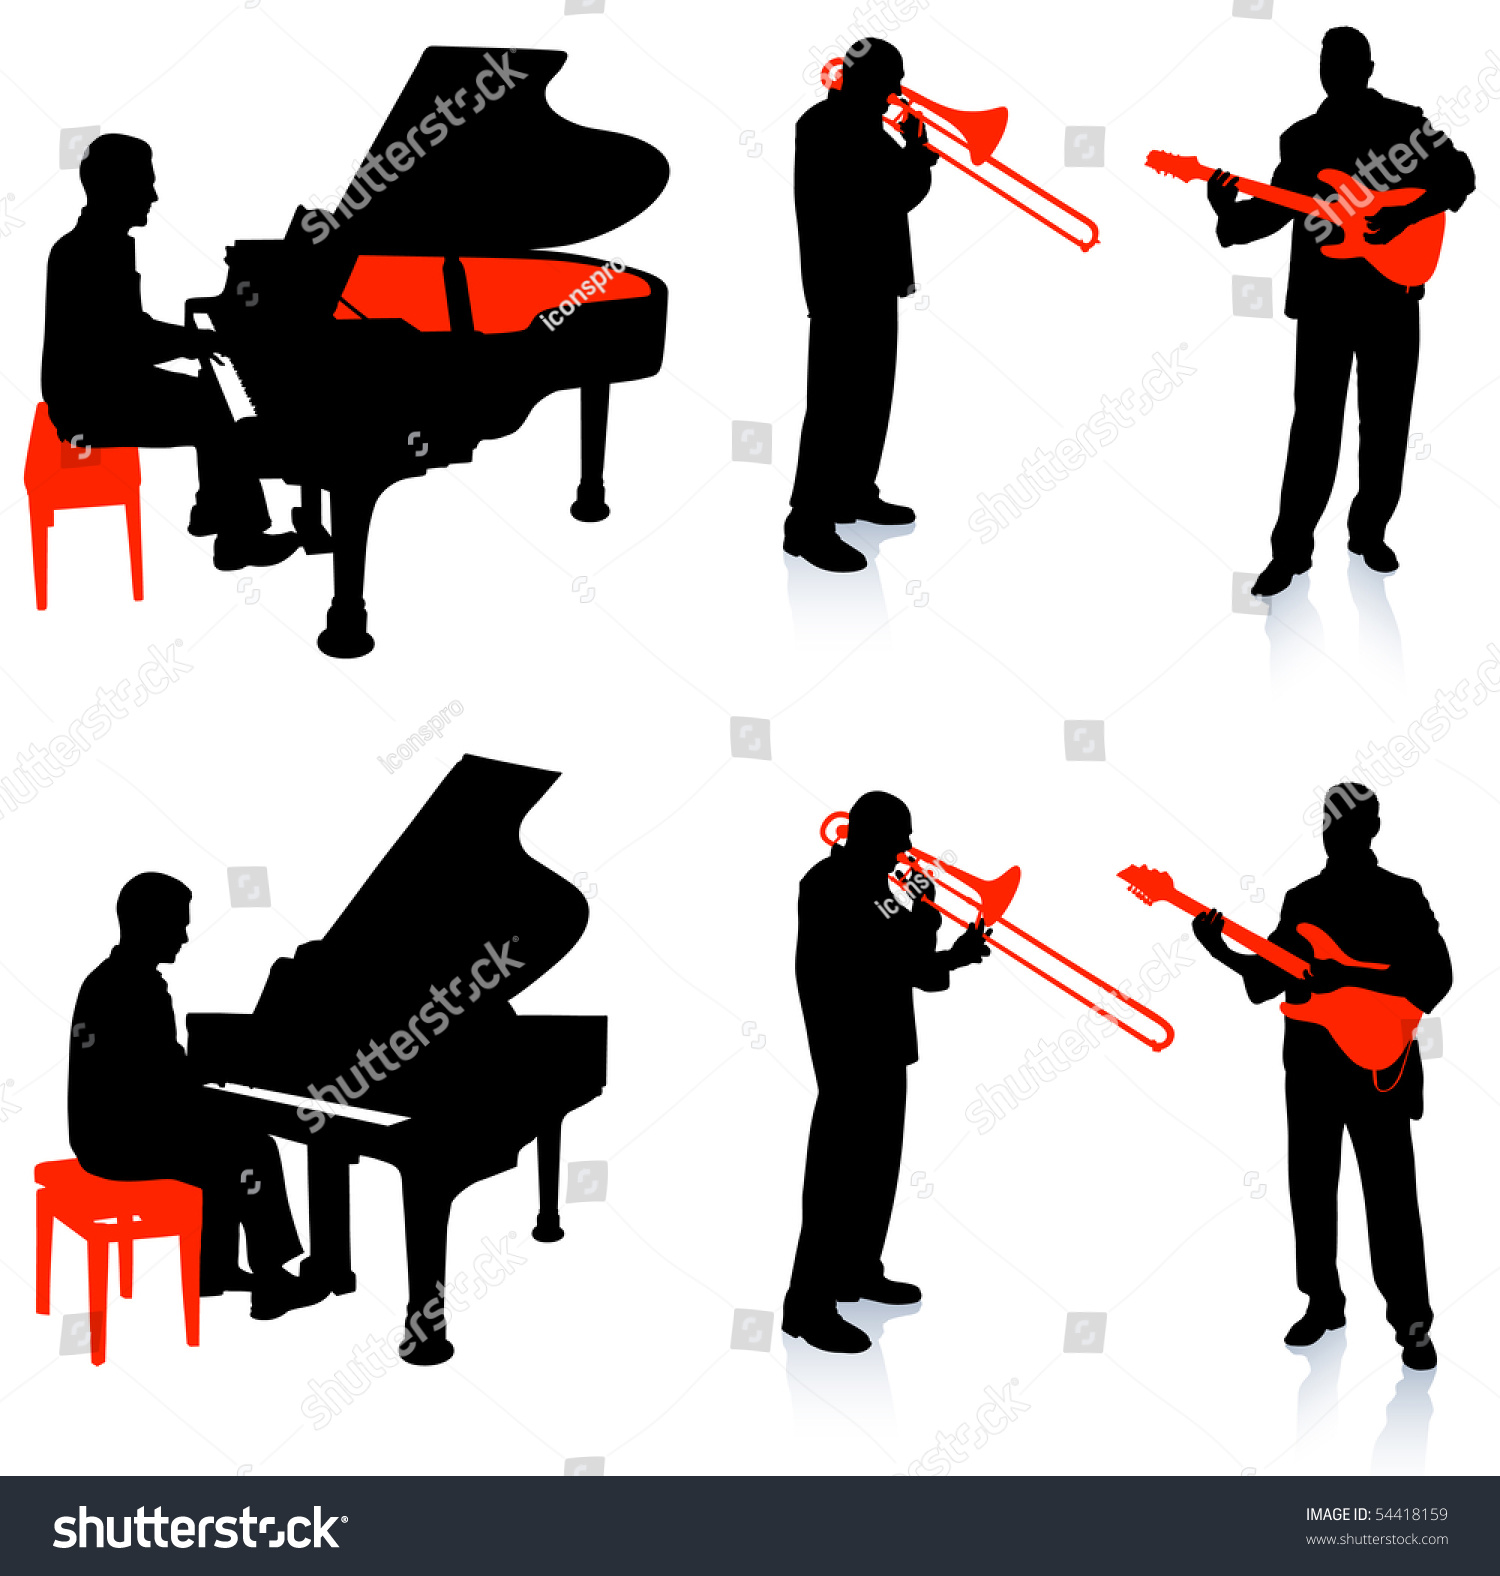 Arts Live Song Room: Live Band Musicians Silhouette Collection Original Stock